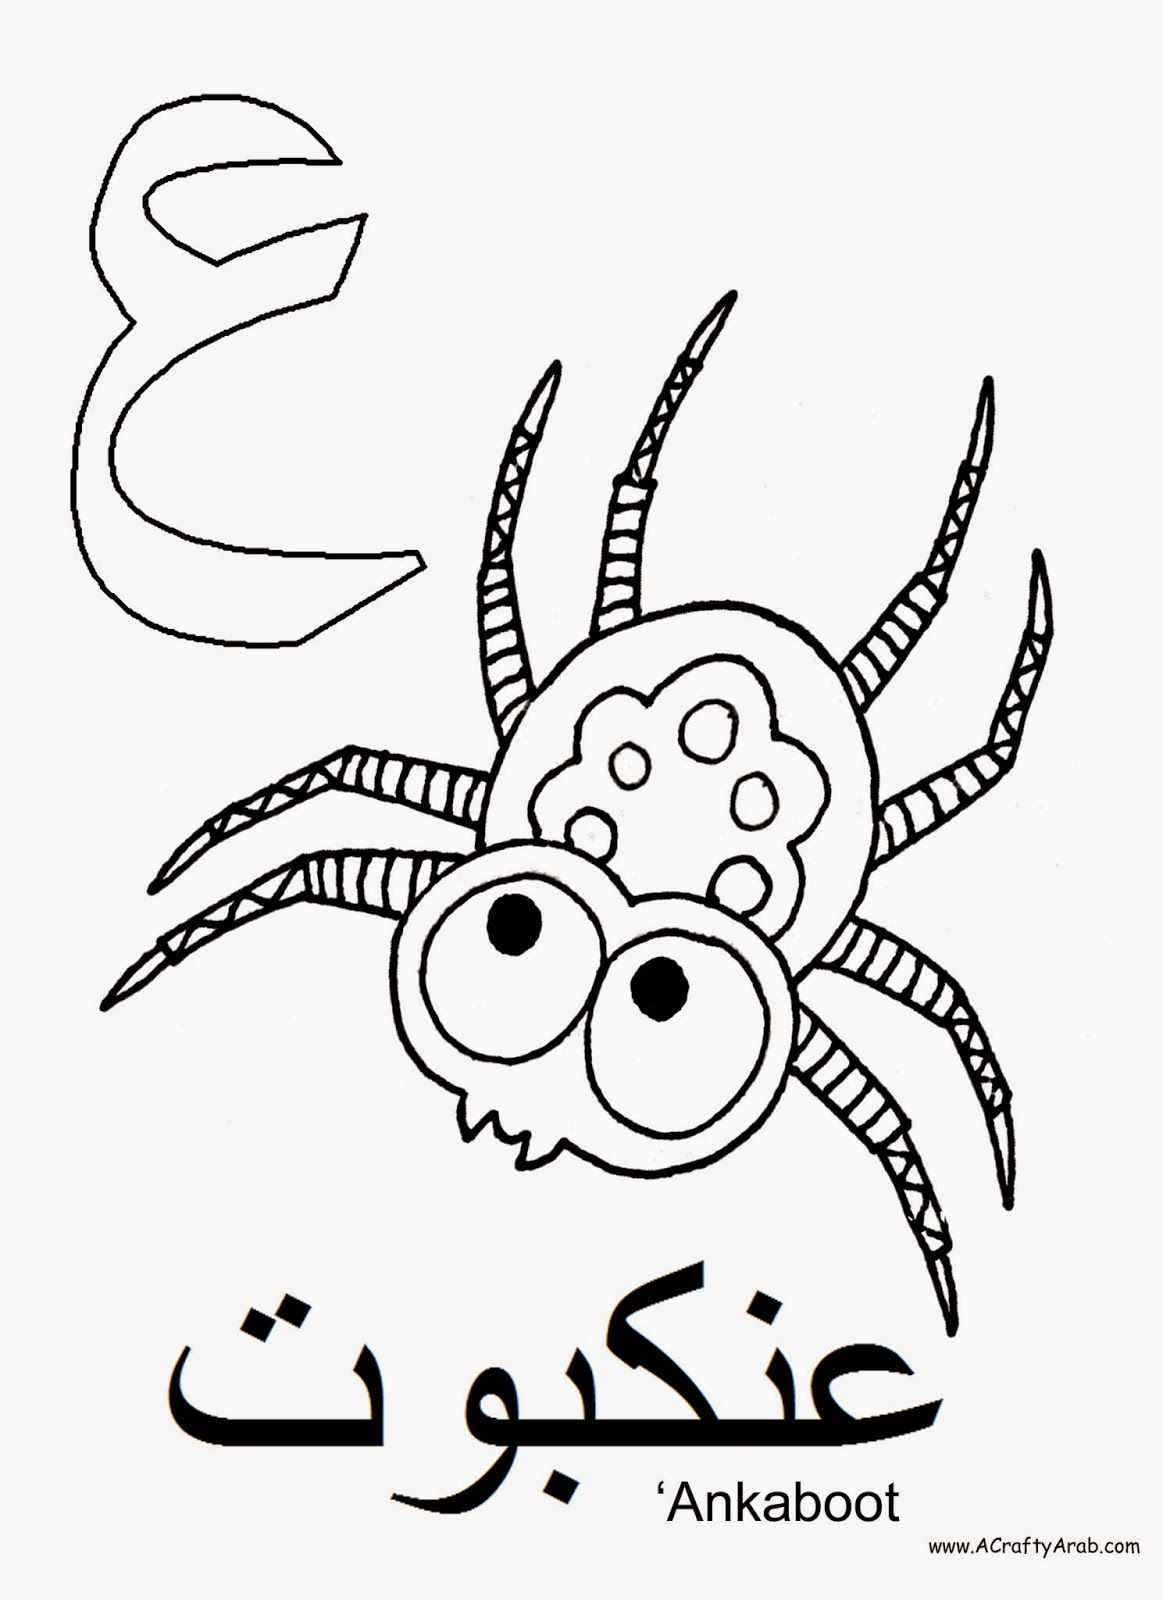 A Crafty Arab Arabic Alphabet coloring pagesZayn is for